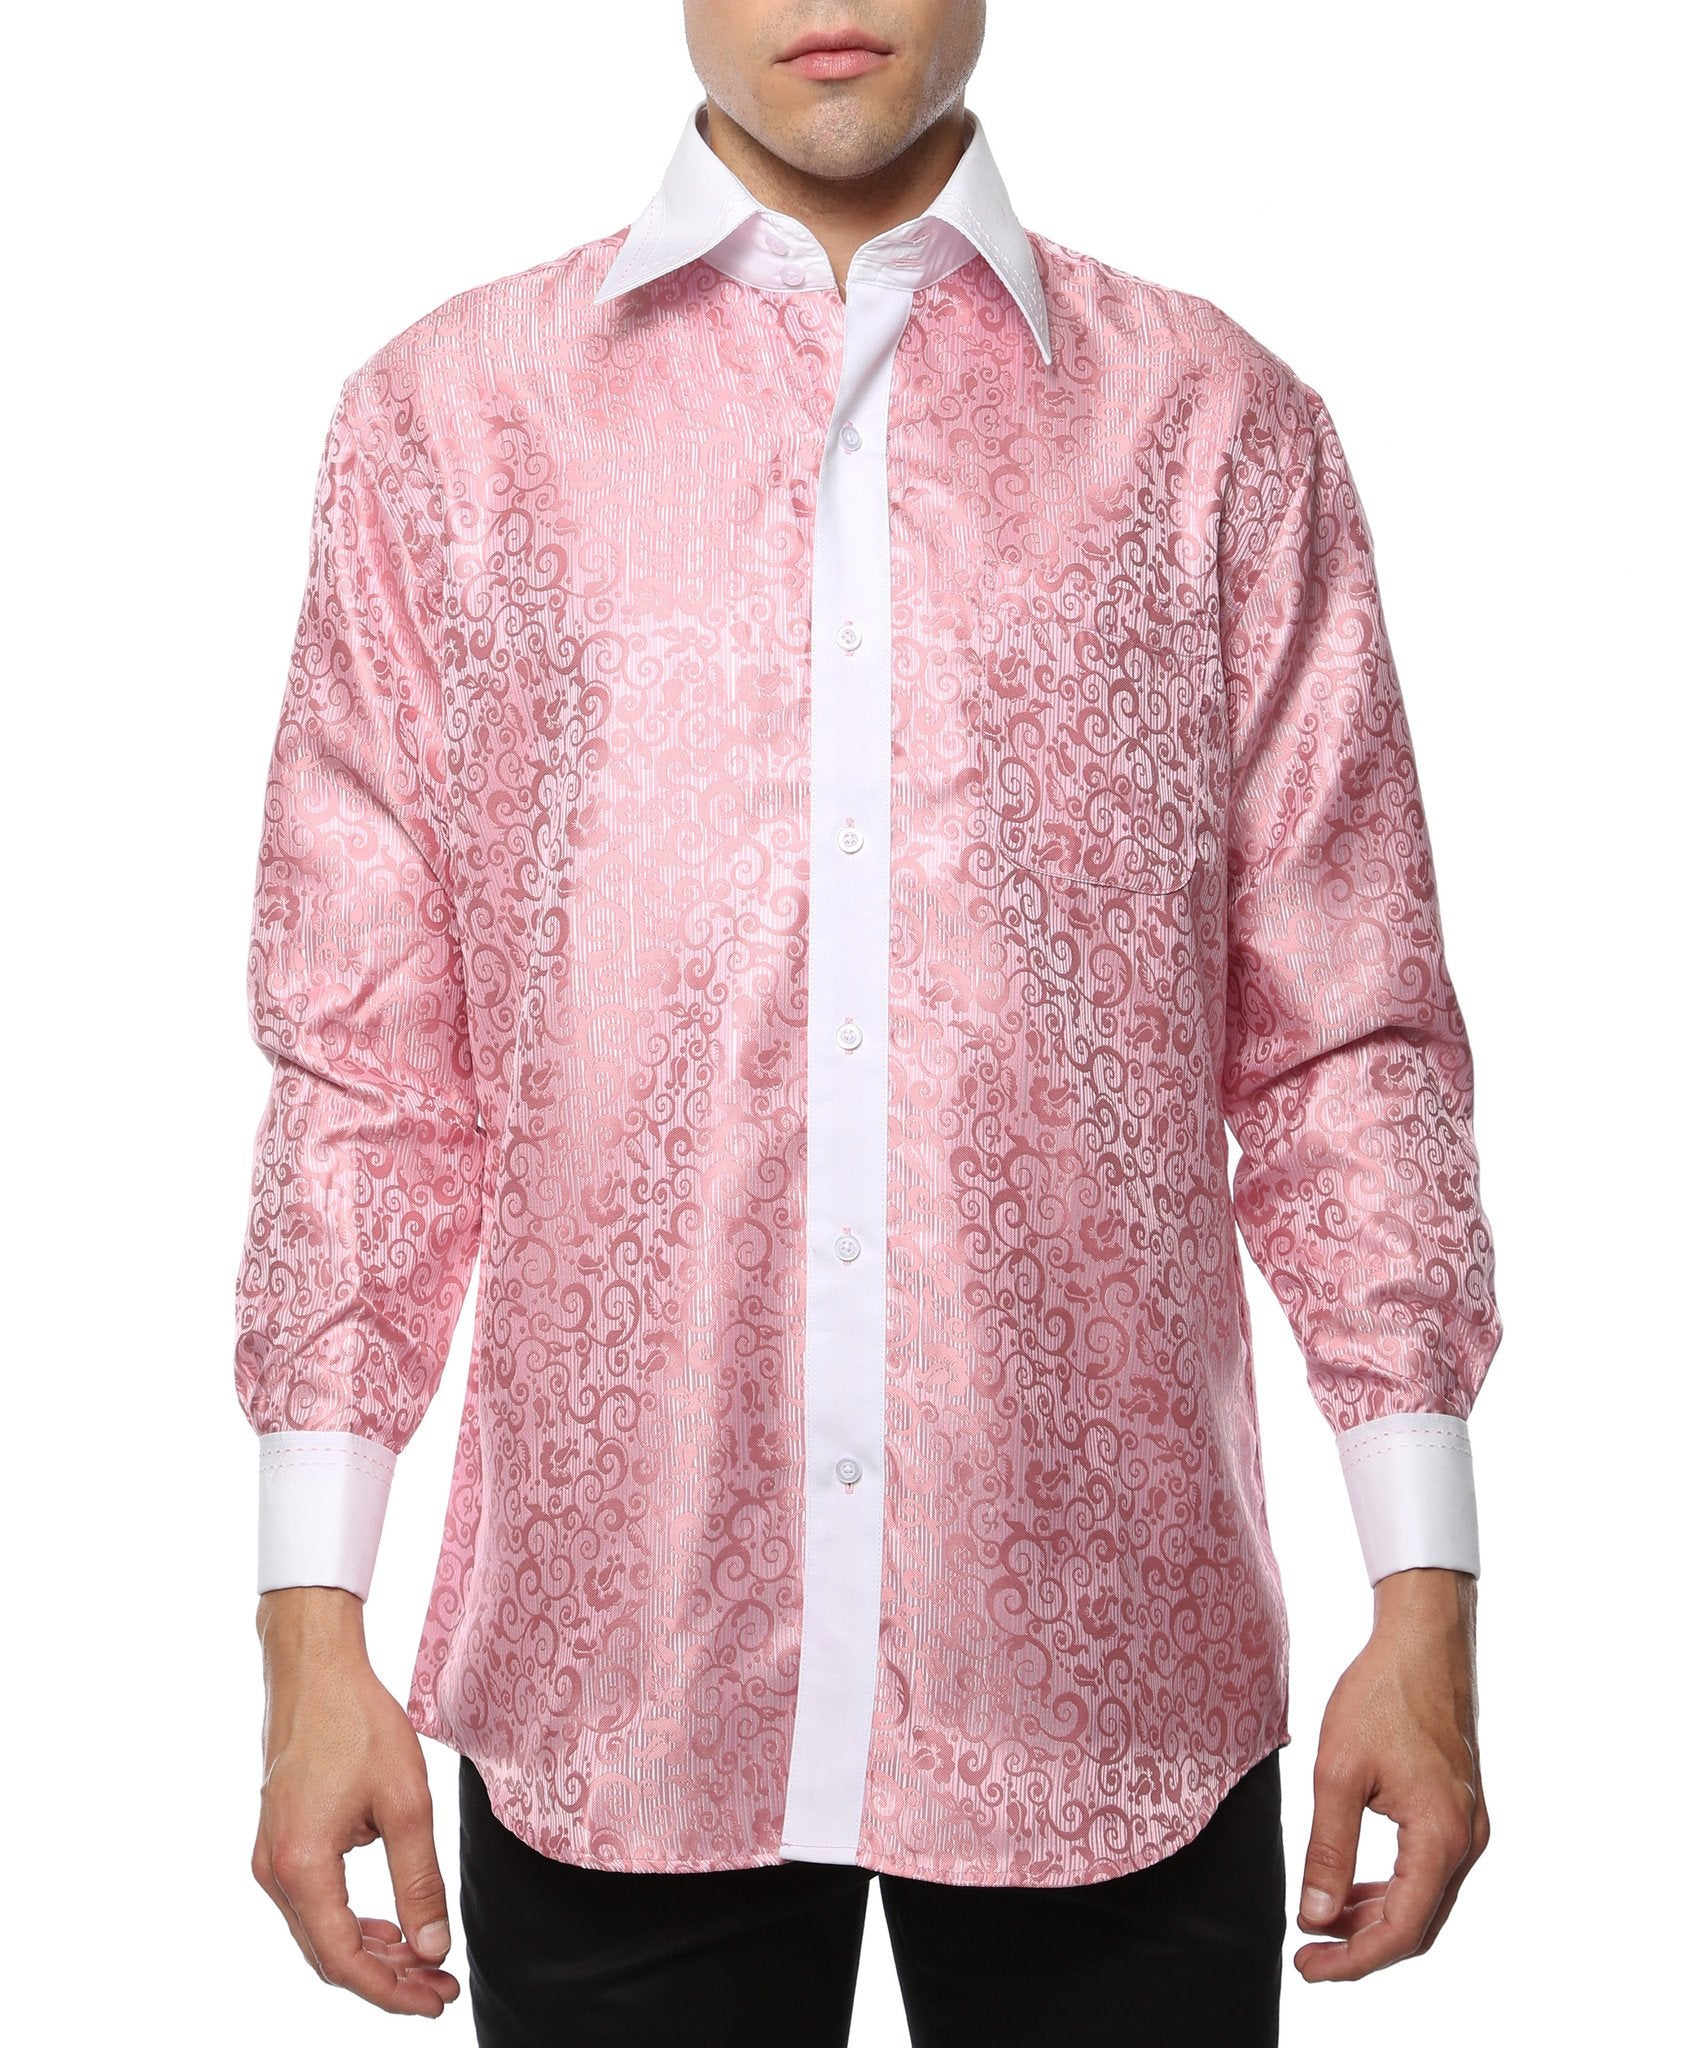 Ferrecci Men's Satine Hi-1027 Pink Pattern Button Down Dress Shirt - Giorgio's Menswear